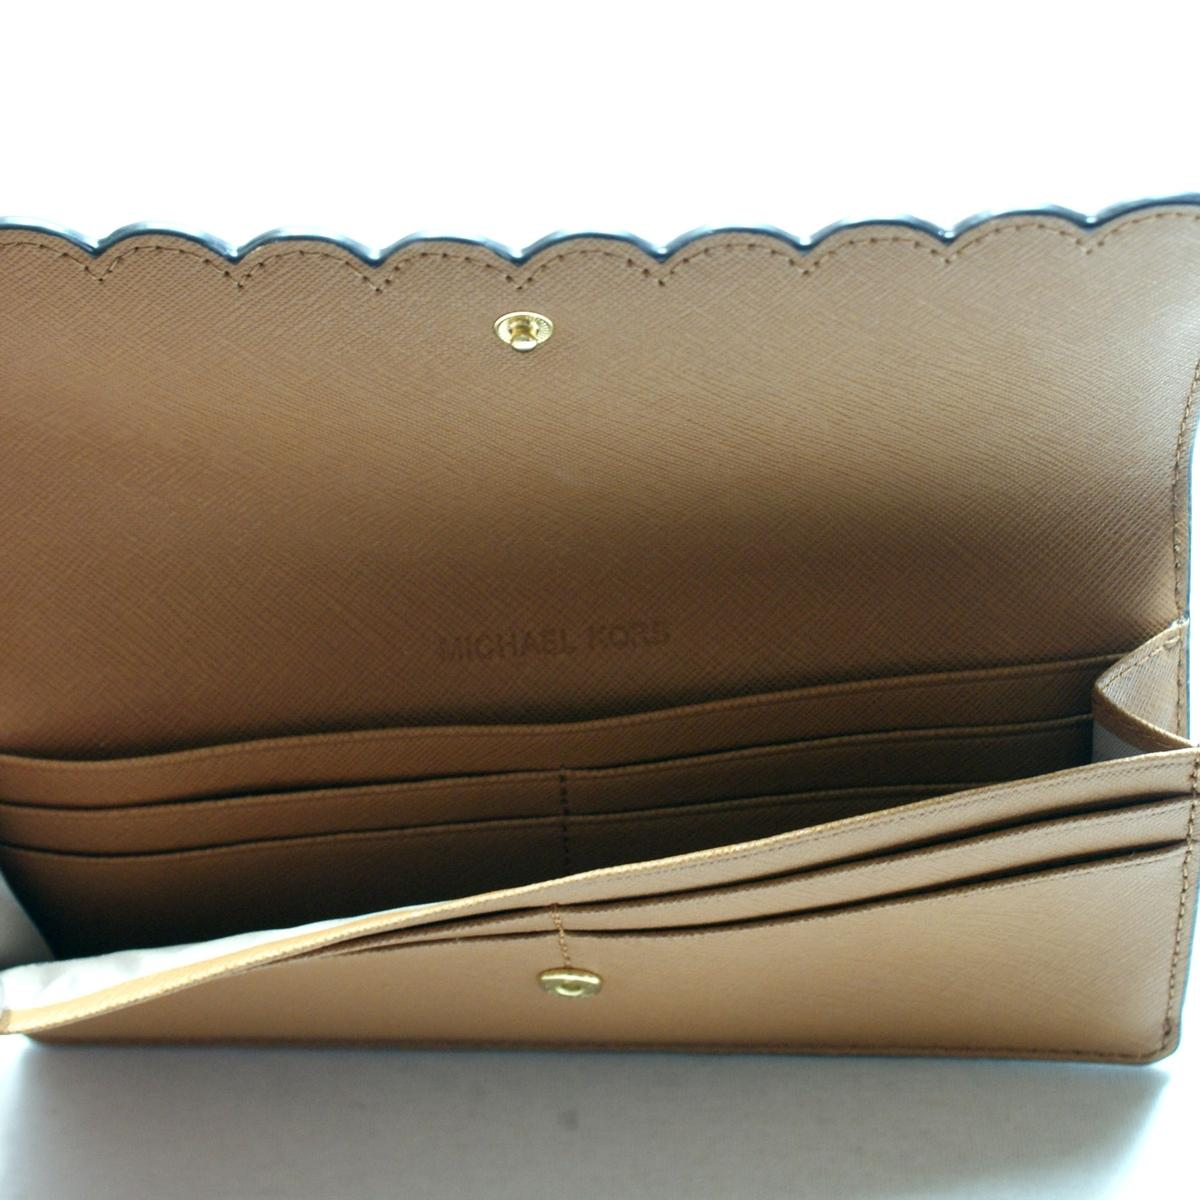 25cfe114c1b7 Home · Michael Kors · Desi Flat Leather Flap Wallet/ Clutch Acorn. CLICK  THUMBNAIL TO ZOOM. Found In: Handbags